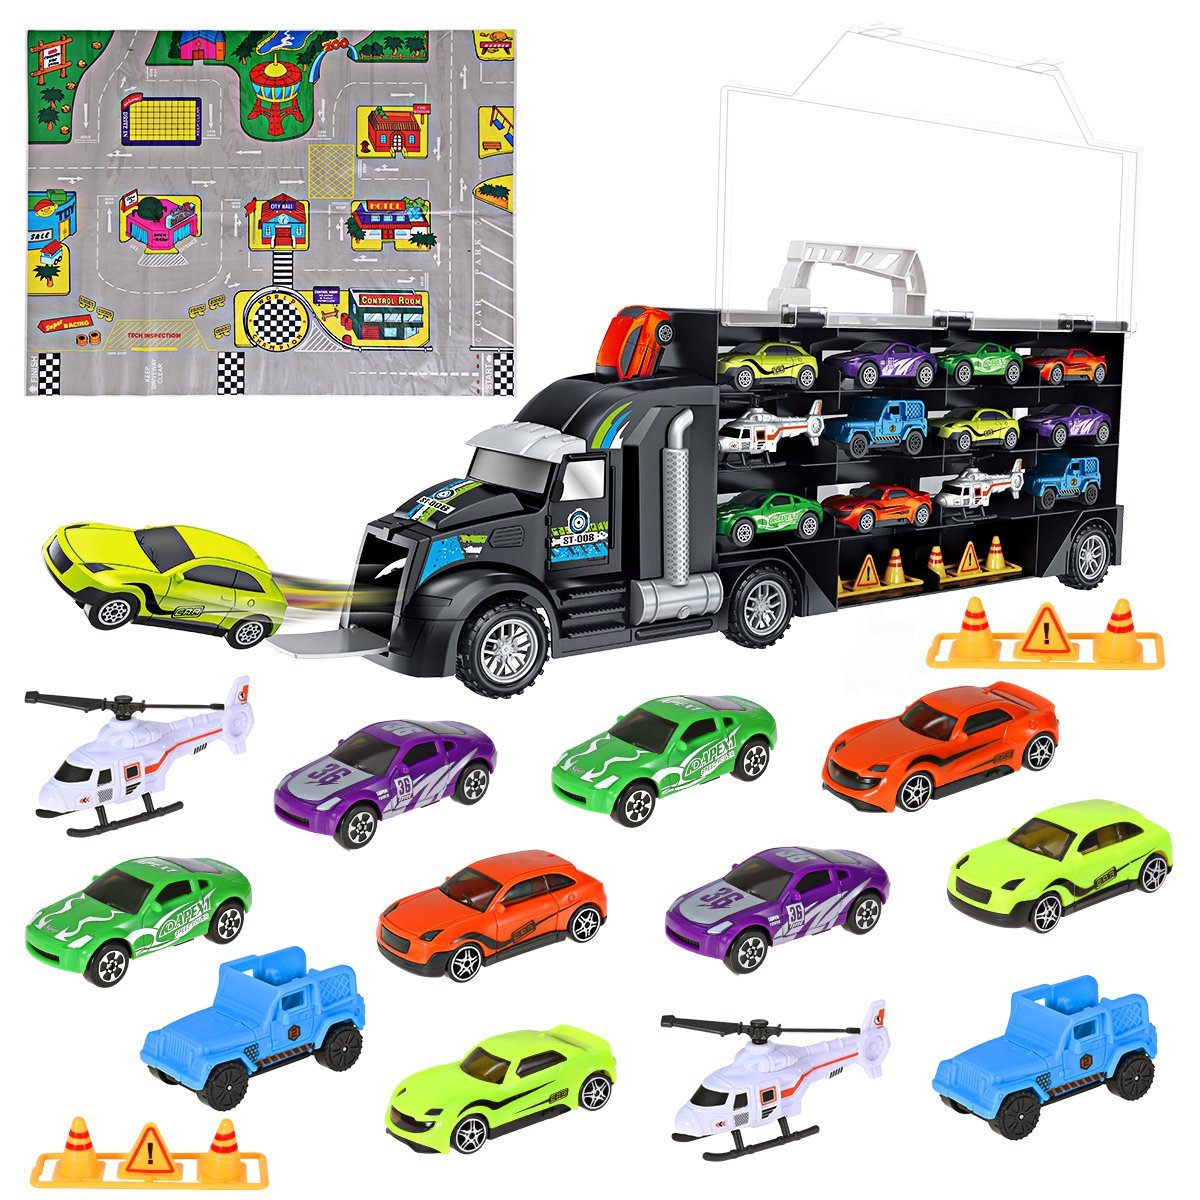 iBaseToy Toy Cars Collection,Transport Truck Vehicles, Educational Set for Kids,Boys,Girls,Composed of 8 Sports Car + 2 ORV + 2 Helicopters + 6 Roadblocks + 1 Town Map,Creative Birthday Festival Gift